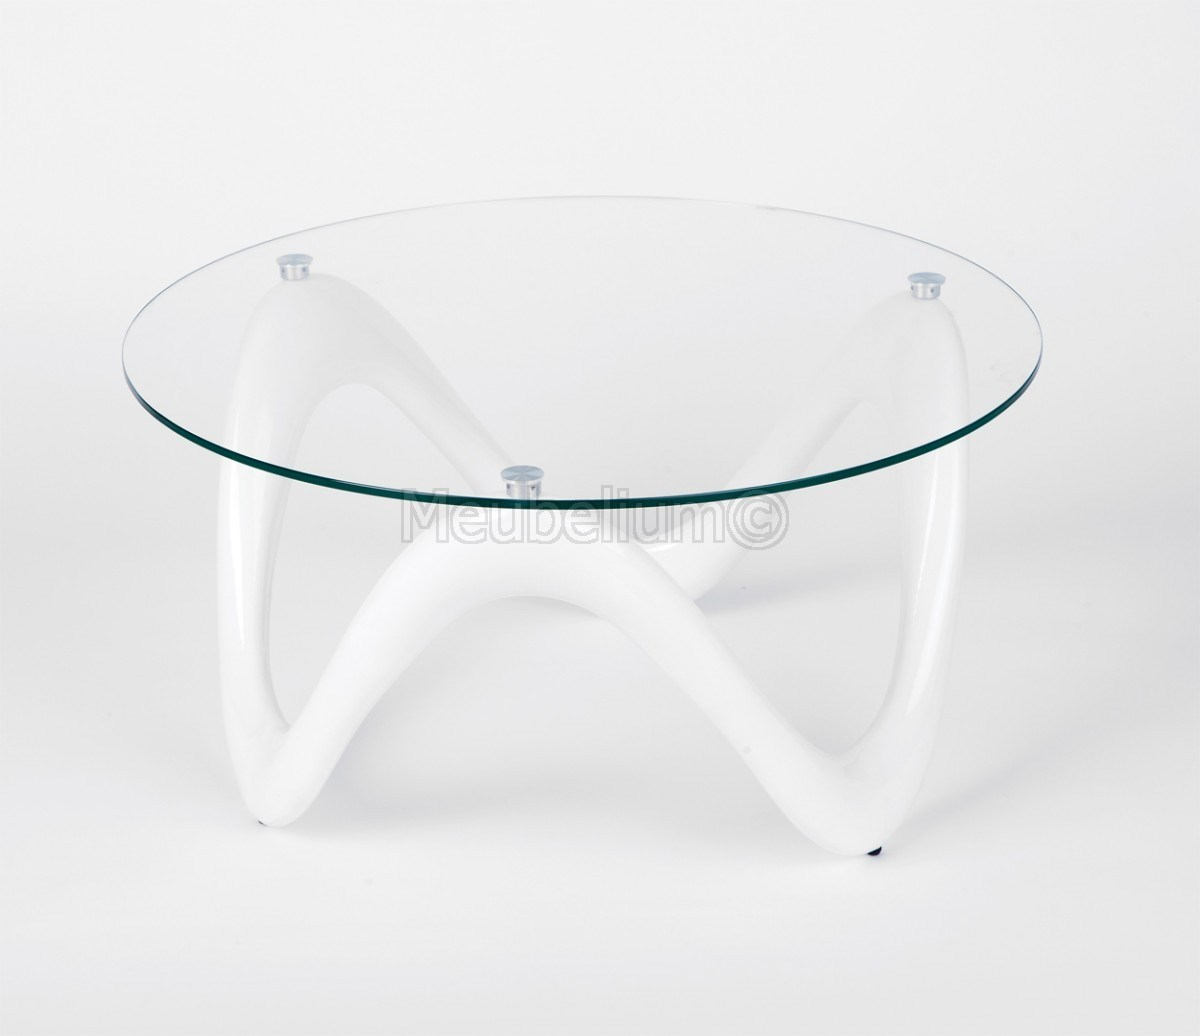 Table Basse Design Blanche Table D Appoint Ronde En Verre Coloris Blanc Heloise